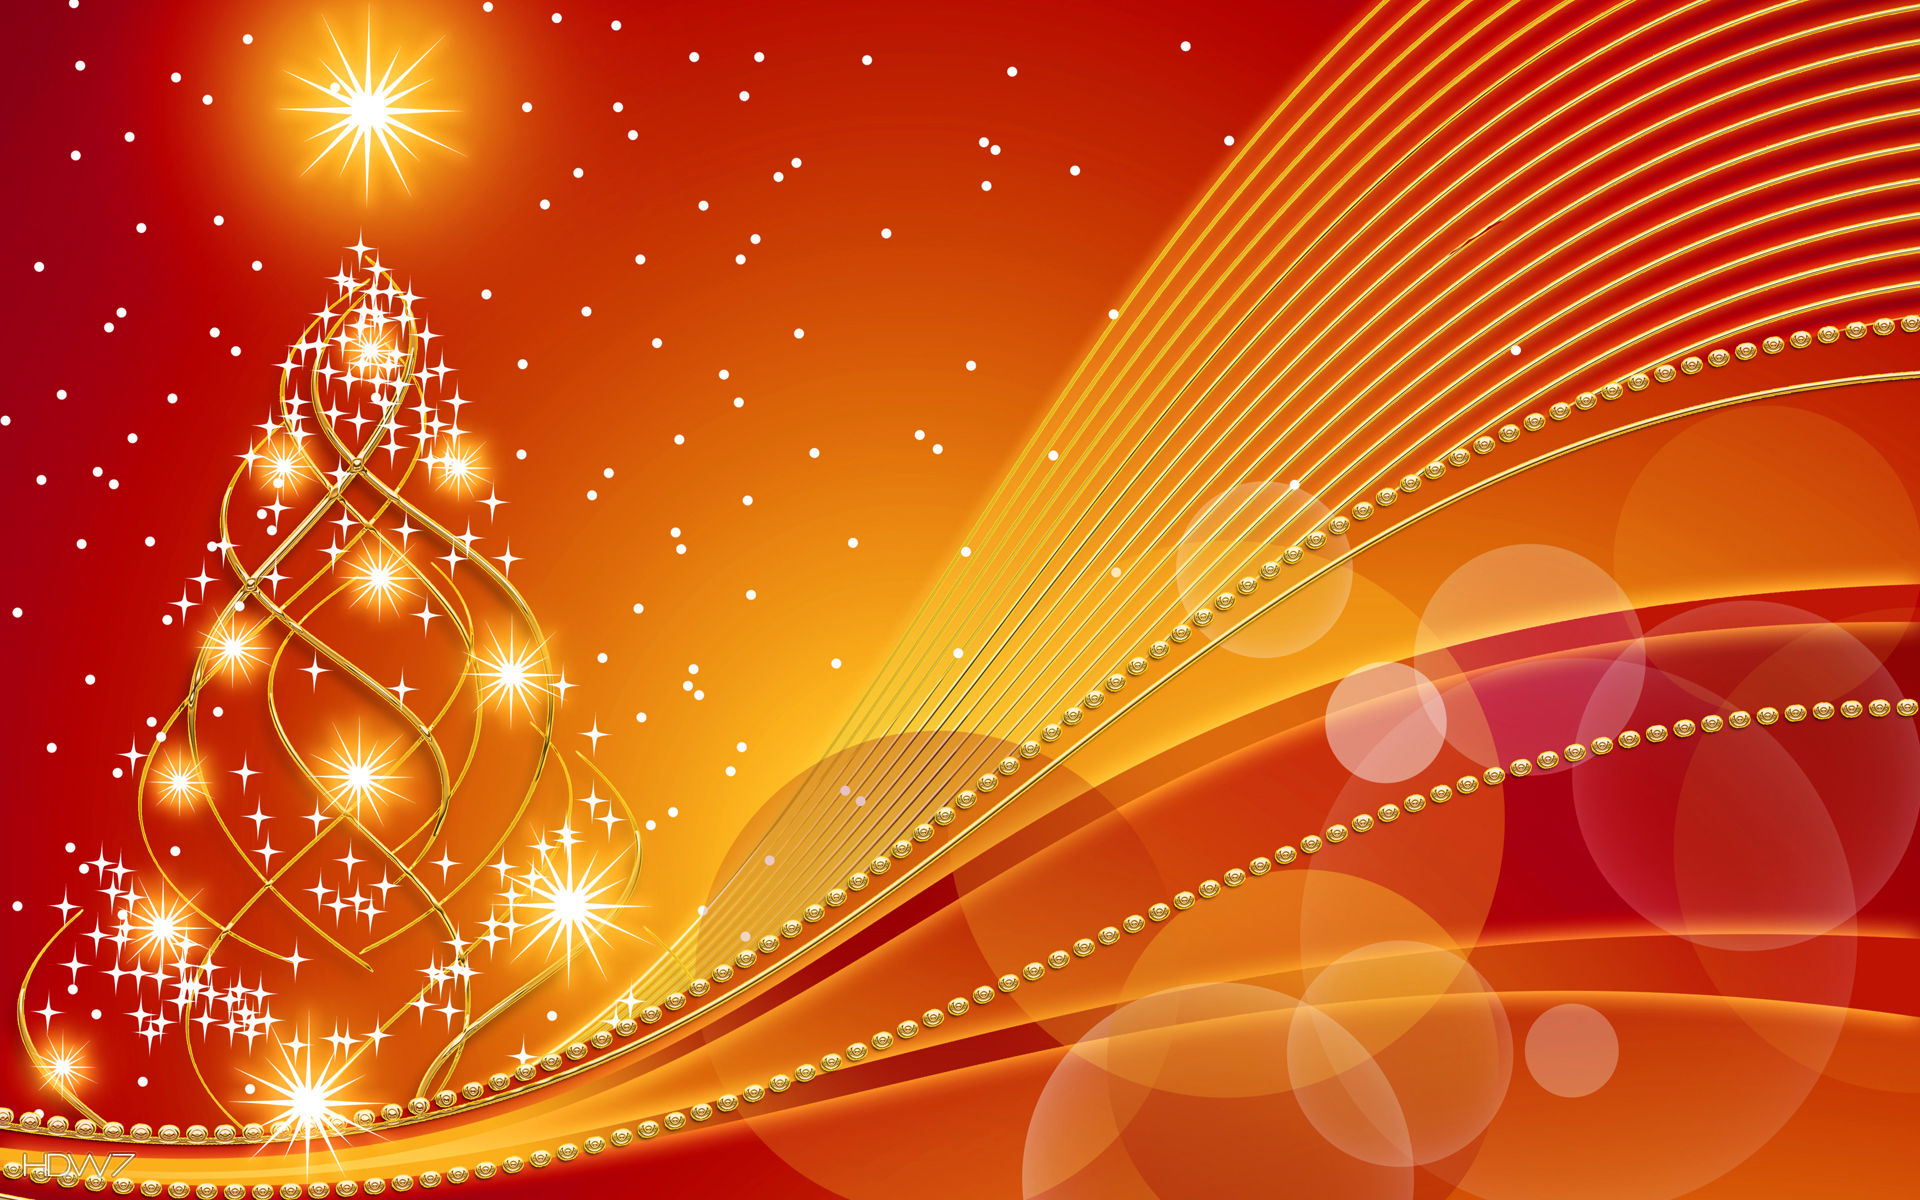 Celwidloma 19 Christmas Backgrounds Vector Images Free